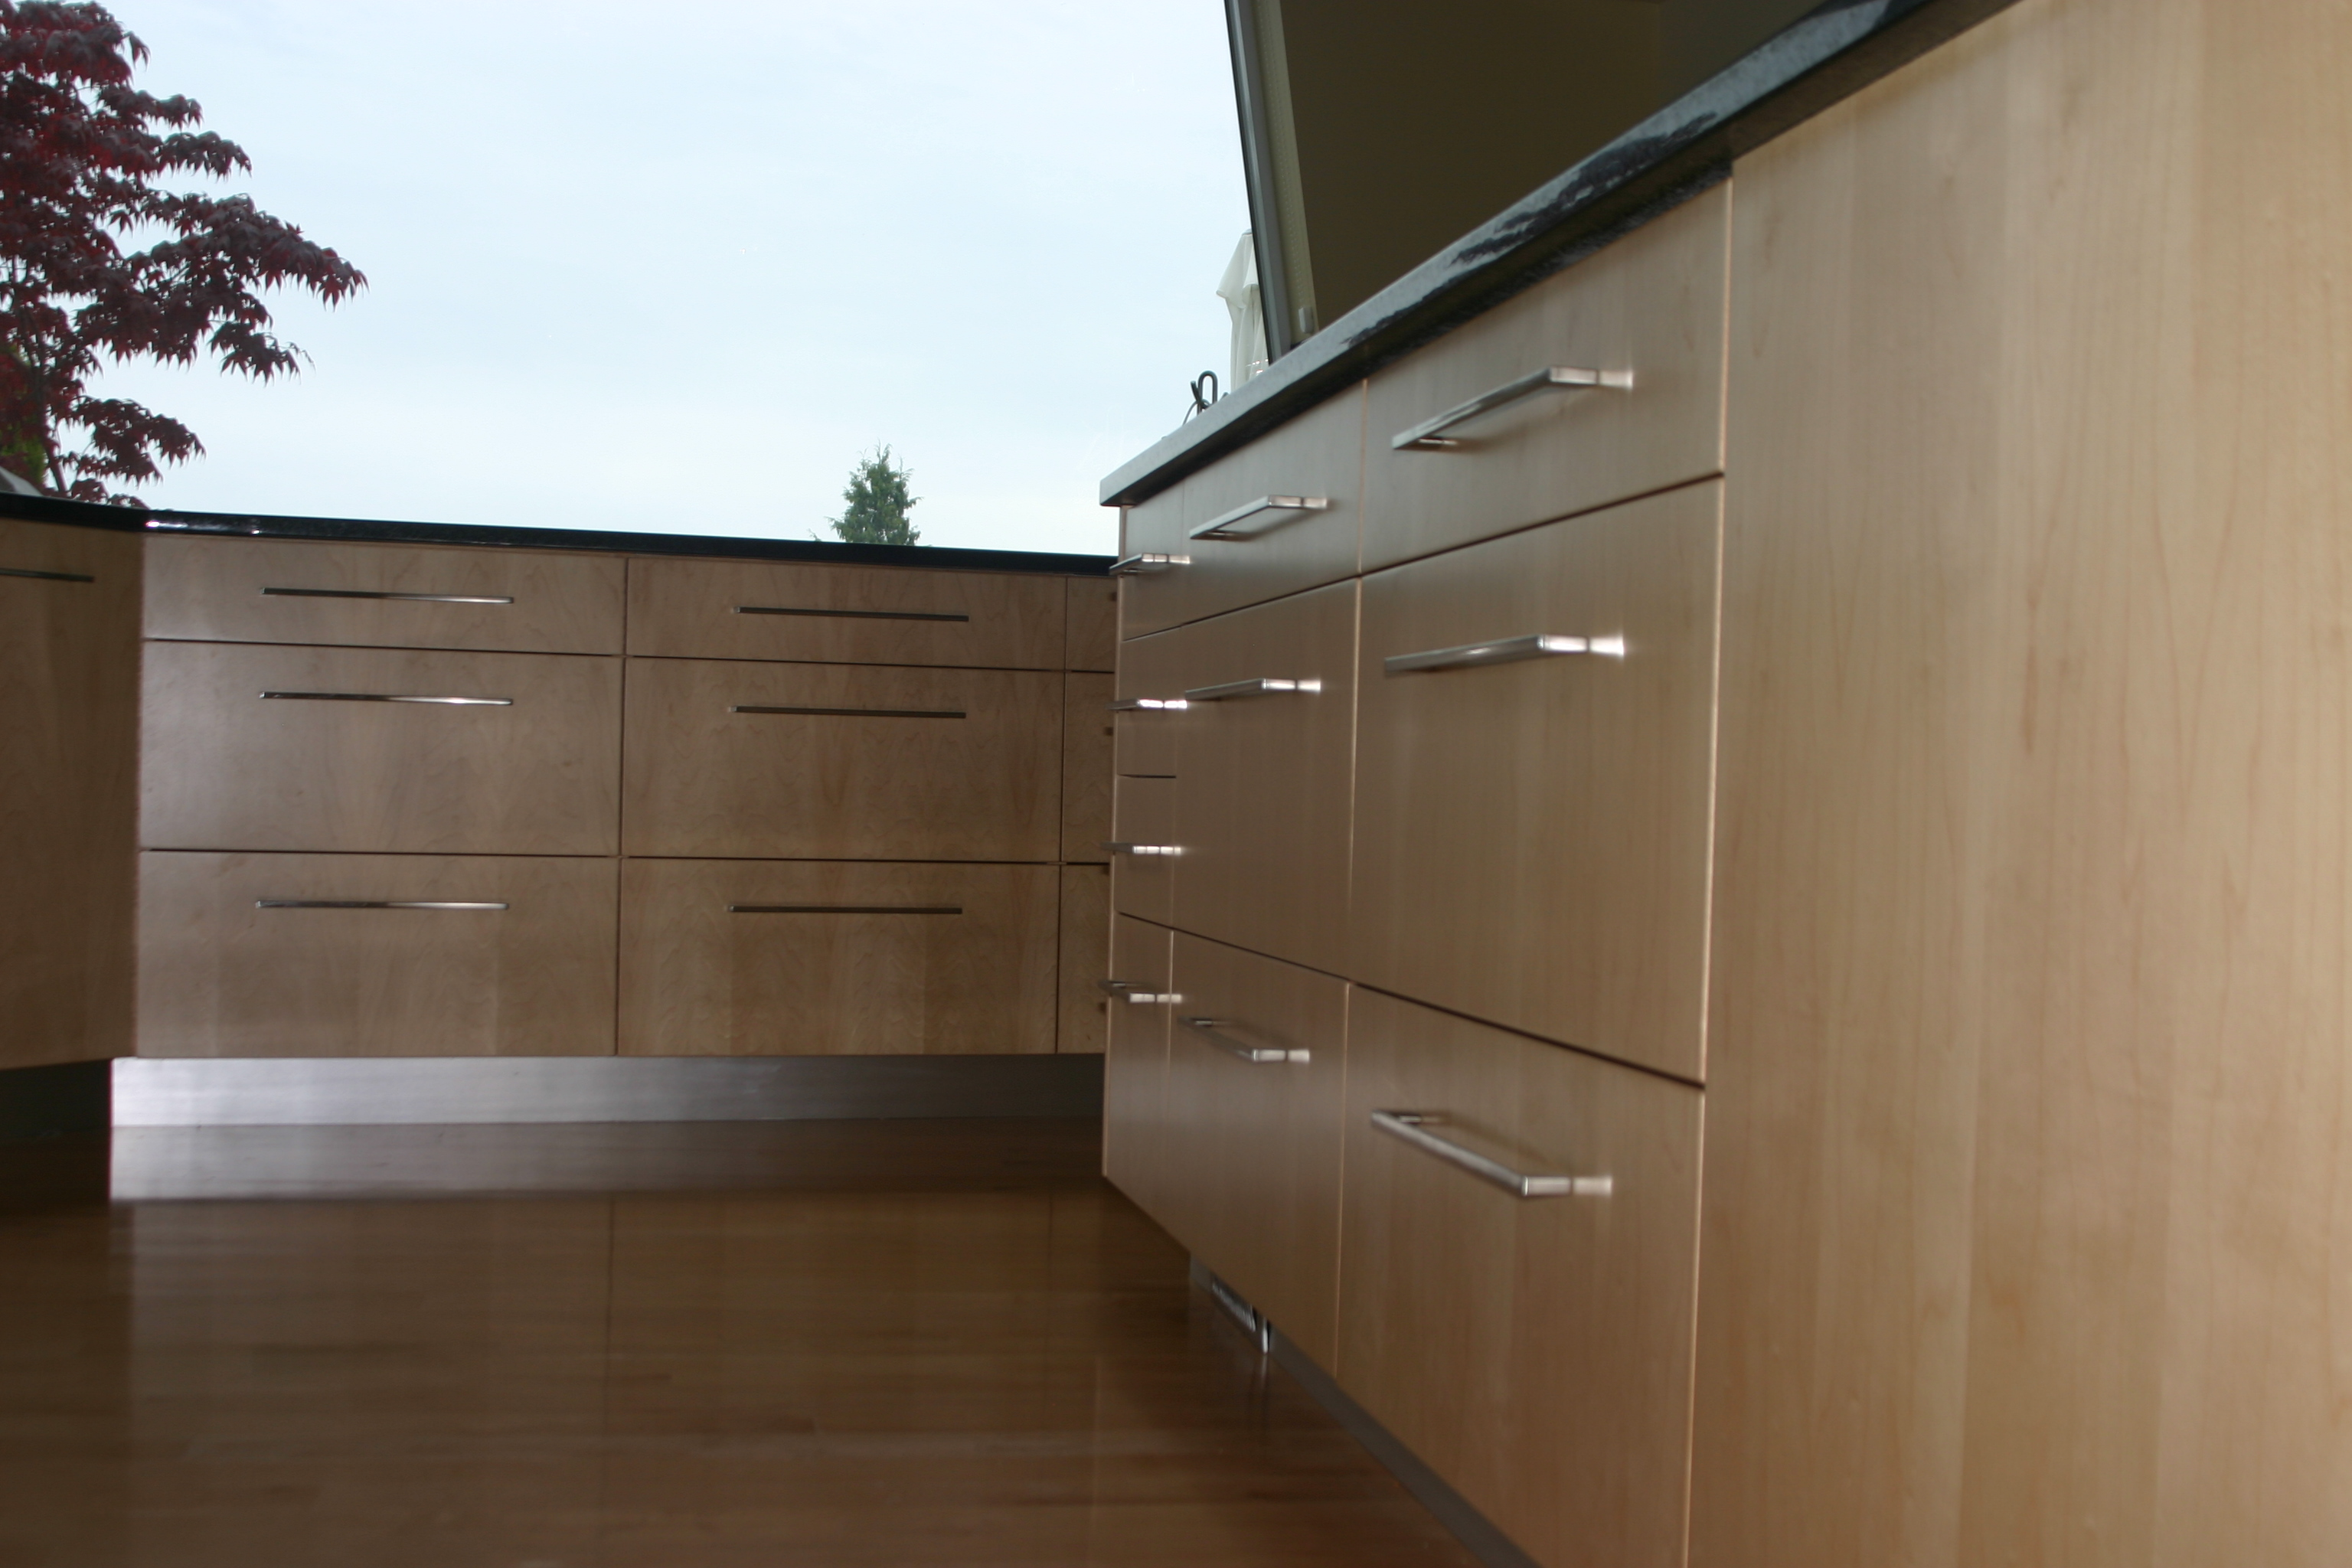 New full extension/soft close drawers retrofitted into island cabinetry